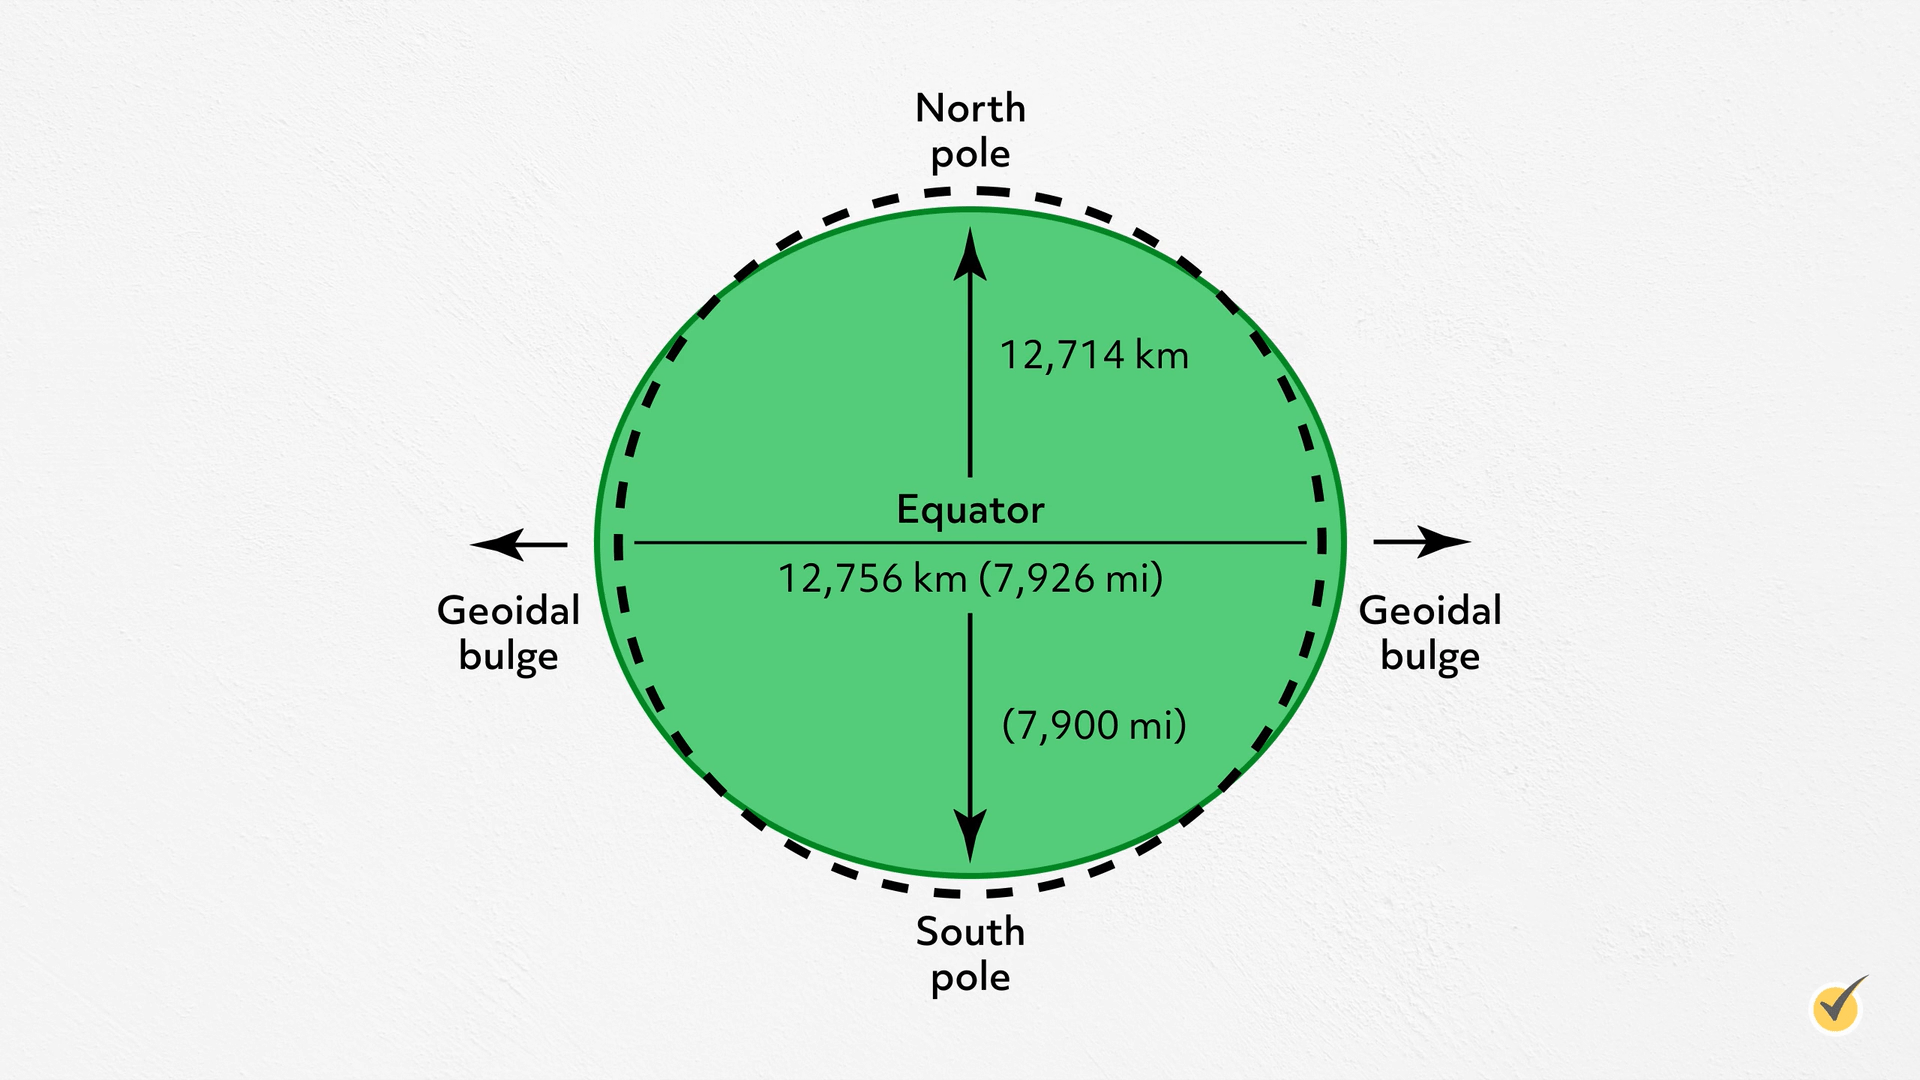 Example of an ellipsoid. North pole, south pole, Geoidal bulge, and equator.